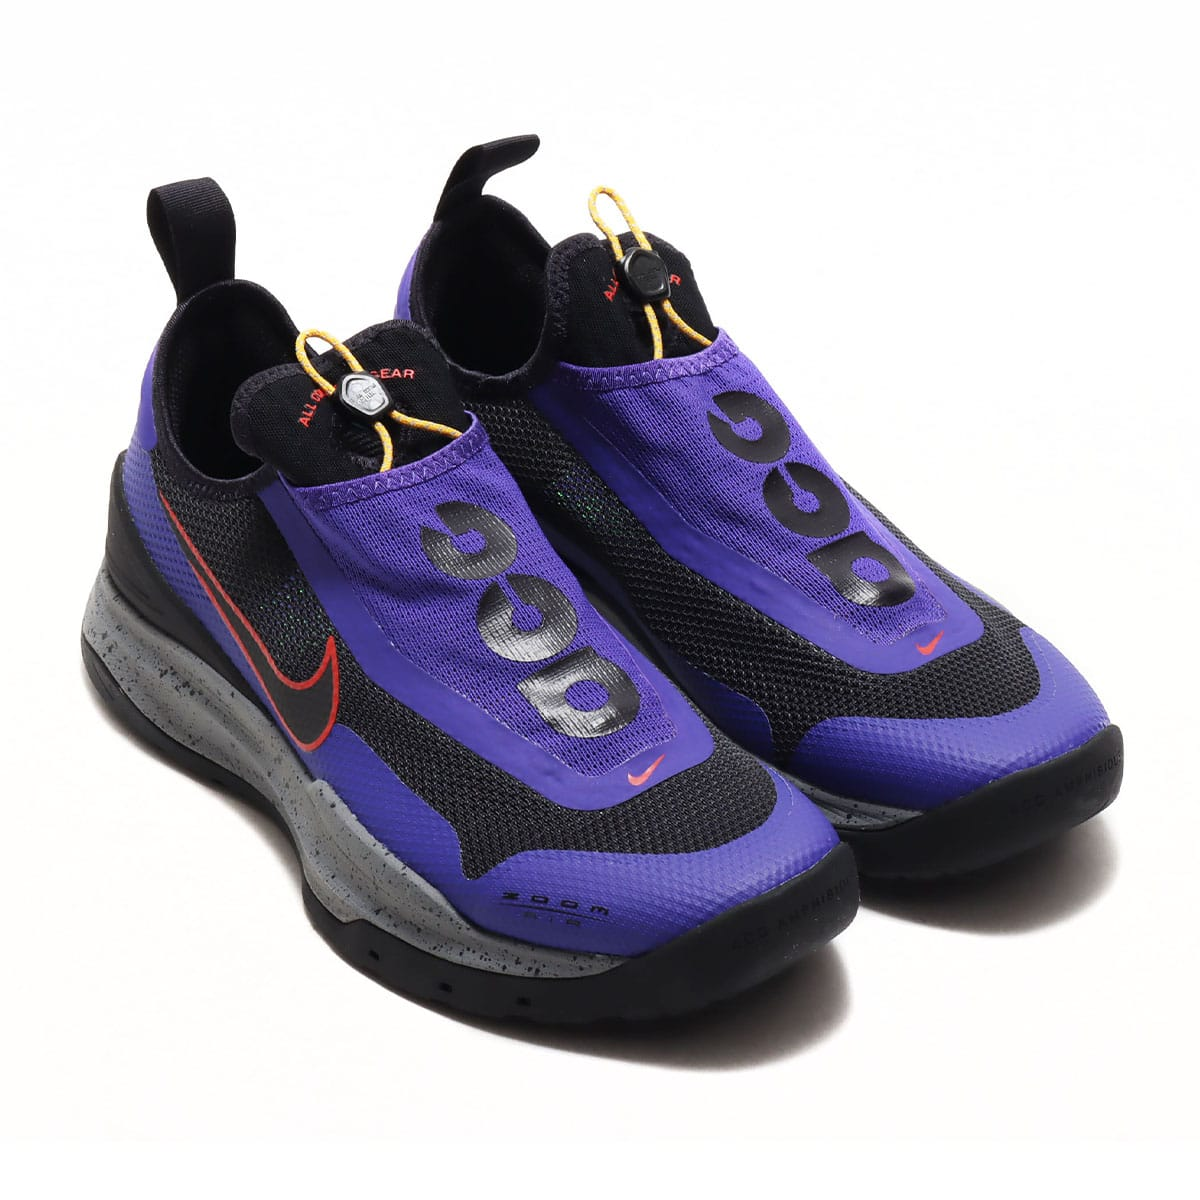 NIKE ACG ZOOM AIR AO FUSION VIOLET/BLACK 20SU-S_photo_large